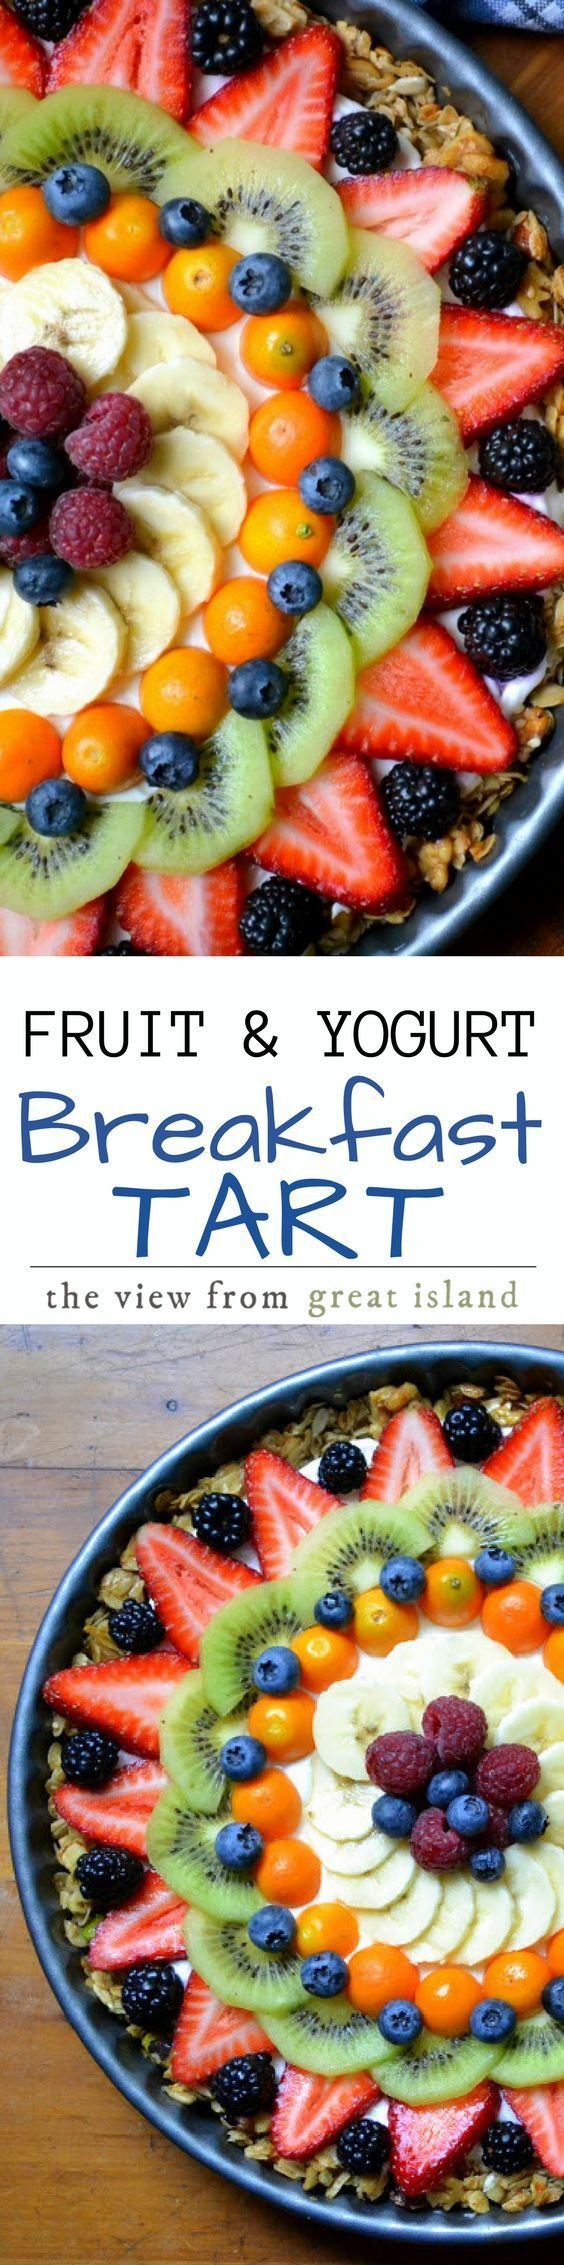 Beautiful Fruit and Yogurt Breakfast Tart ~ this gluten free tart is perfect for any occasion, just use whatever fruit is in season!   brunch   Mother's Day   Easter   Fruit tart   fruit pizza   healthy   Whole 30   Paleo